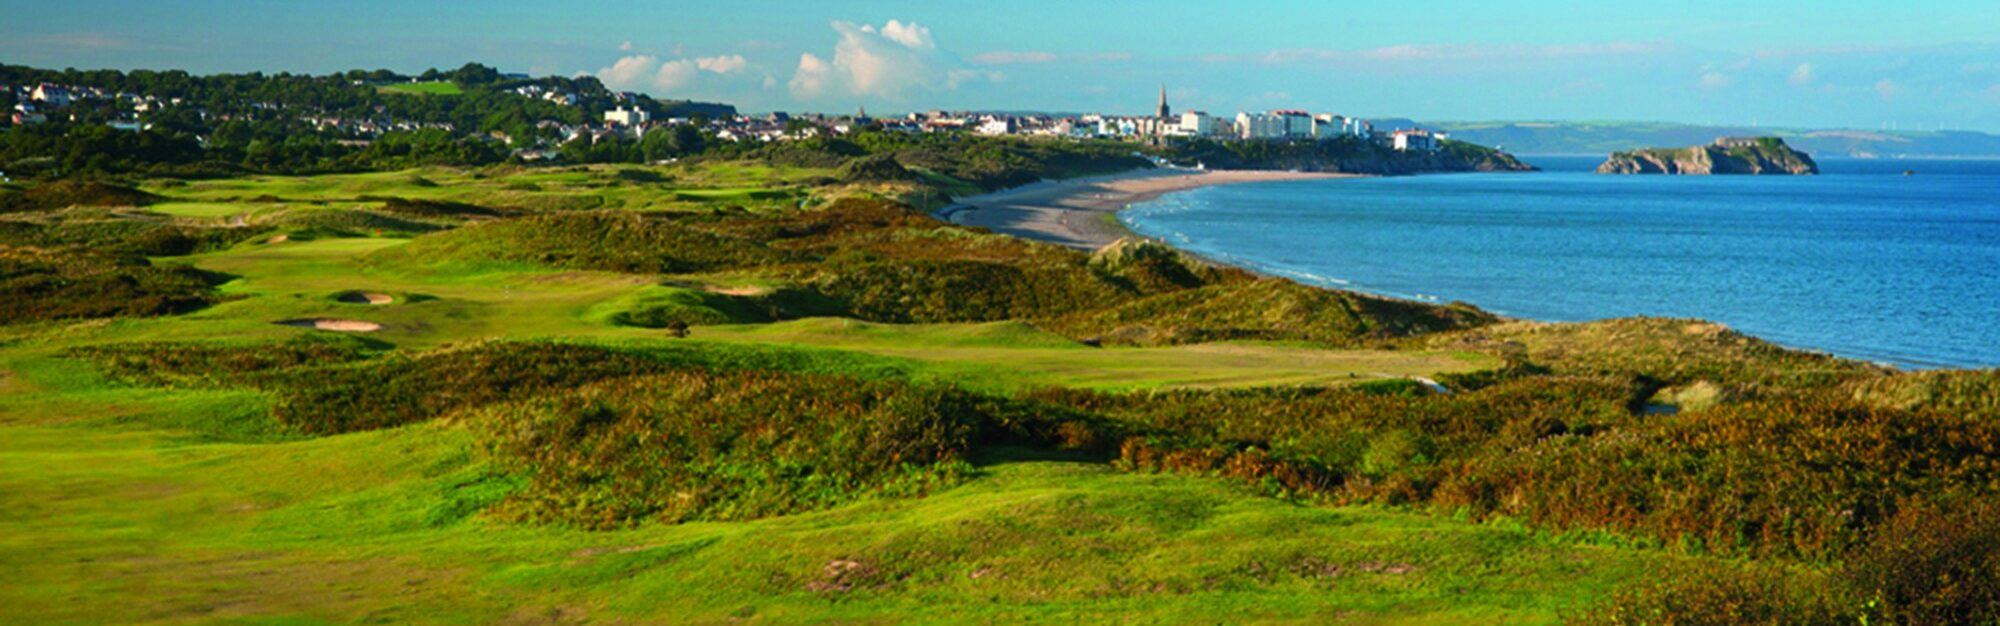 Tenby: The archetypal birthplace of Welsh golf